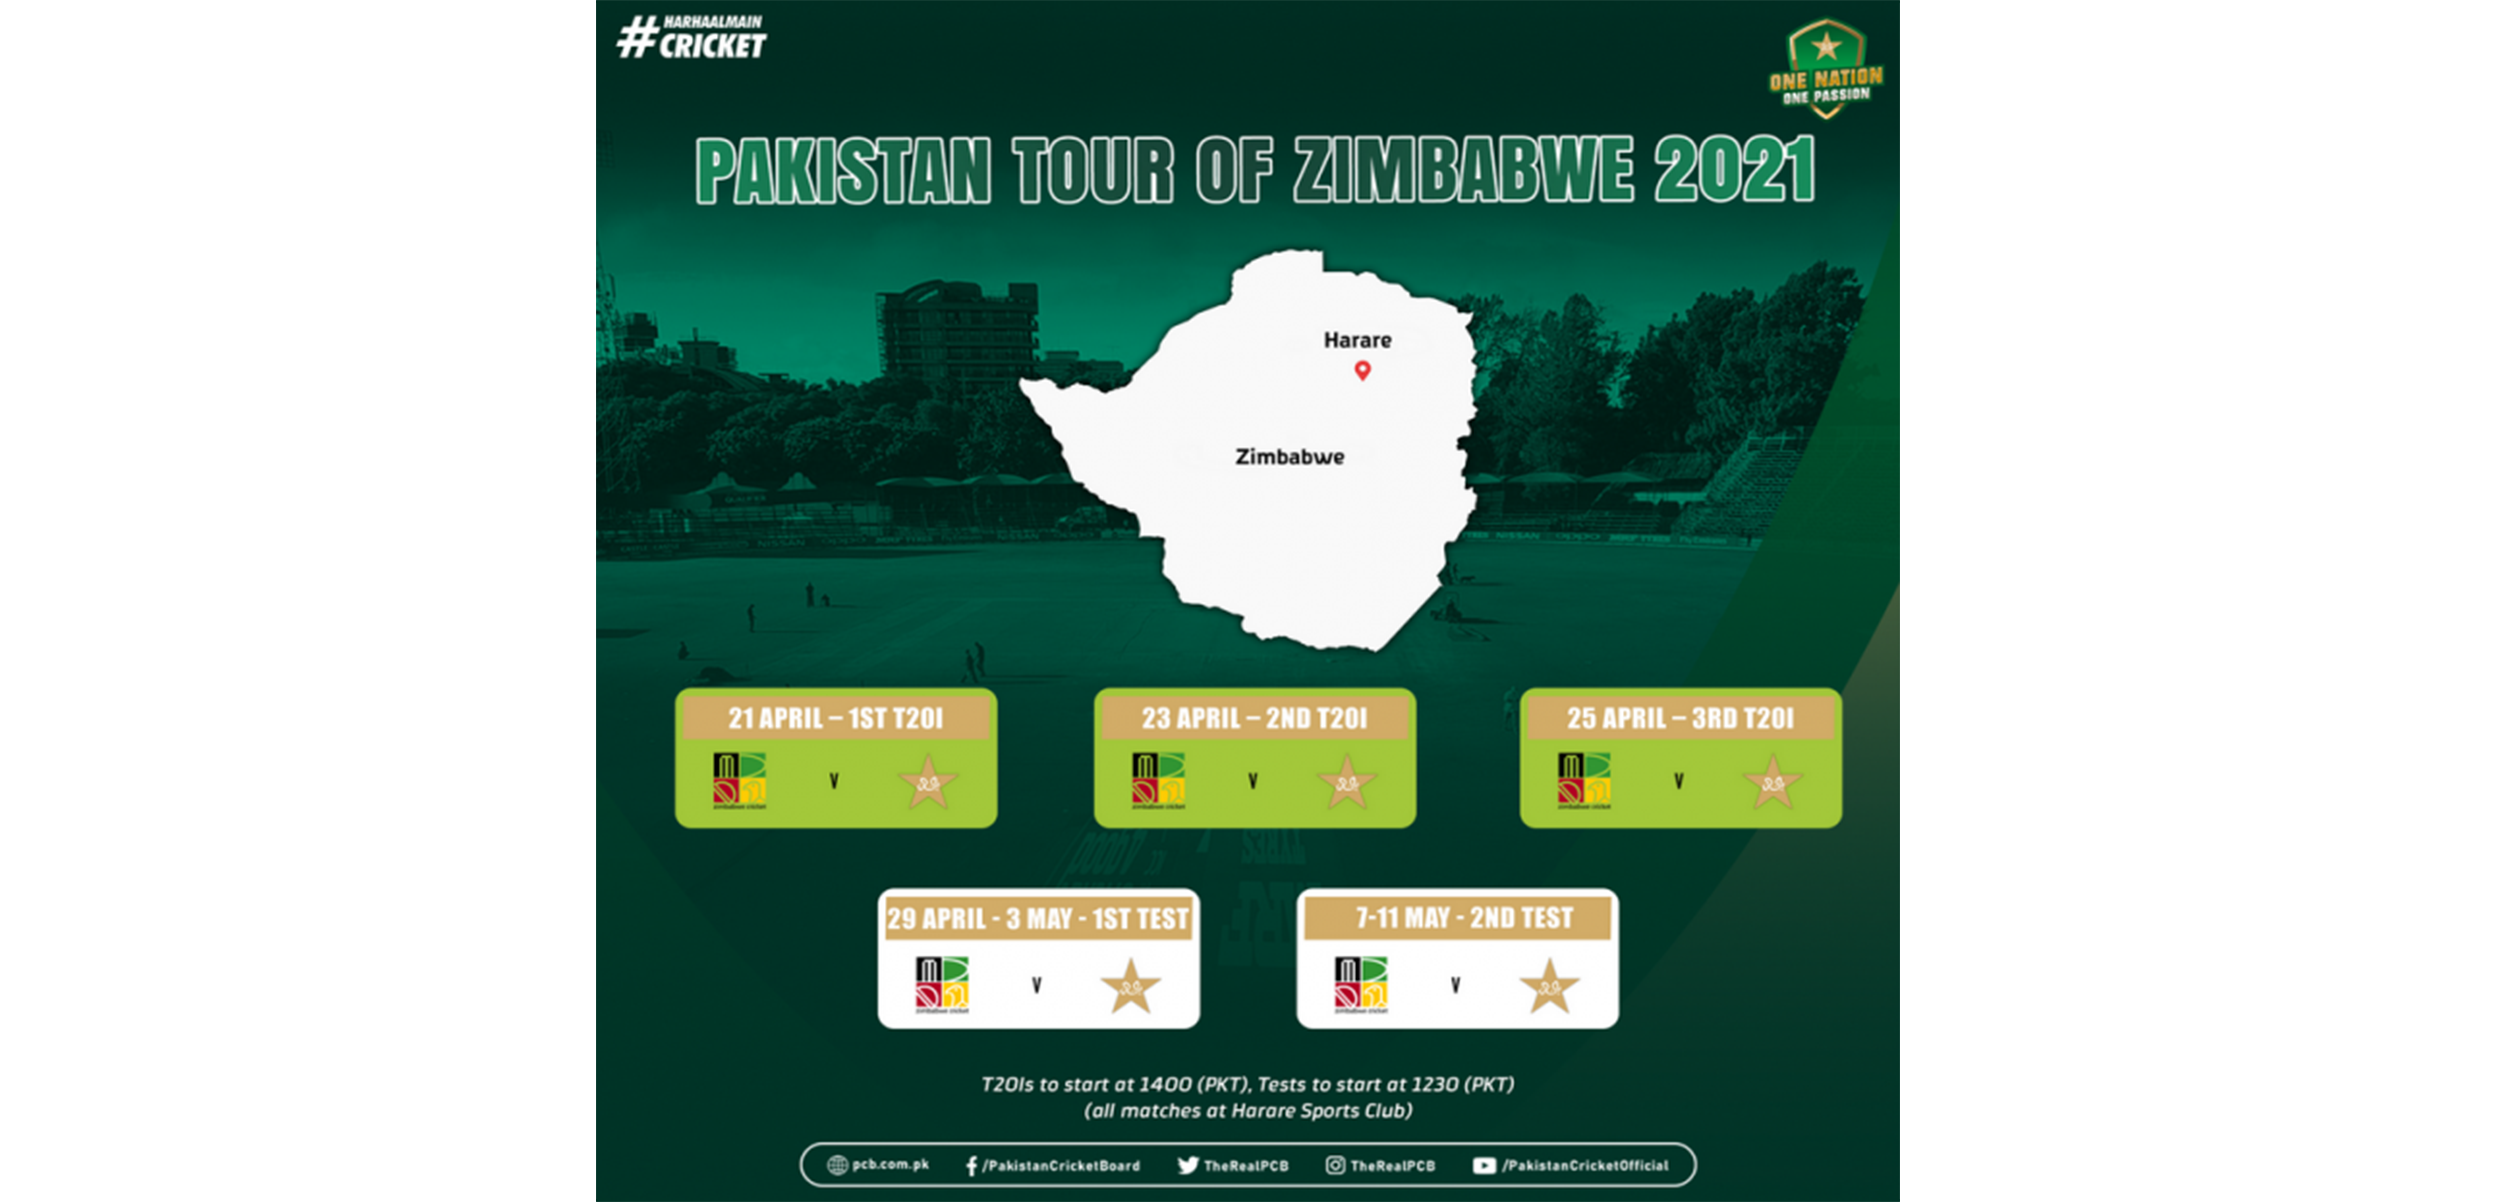 PCB: Pakistan to become first international cricket side to tour Zimbabwe post Covid-19 outbreak